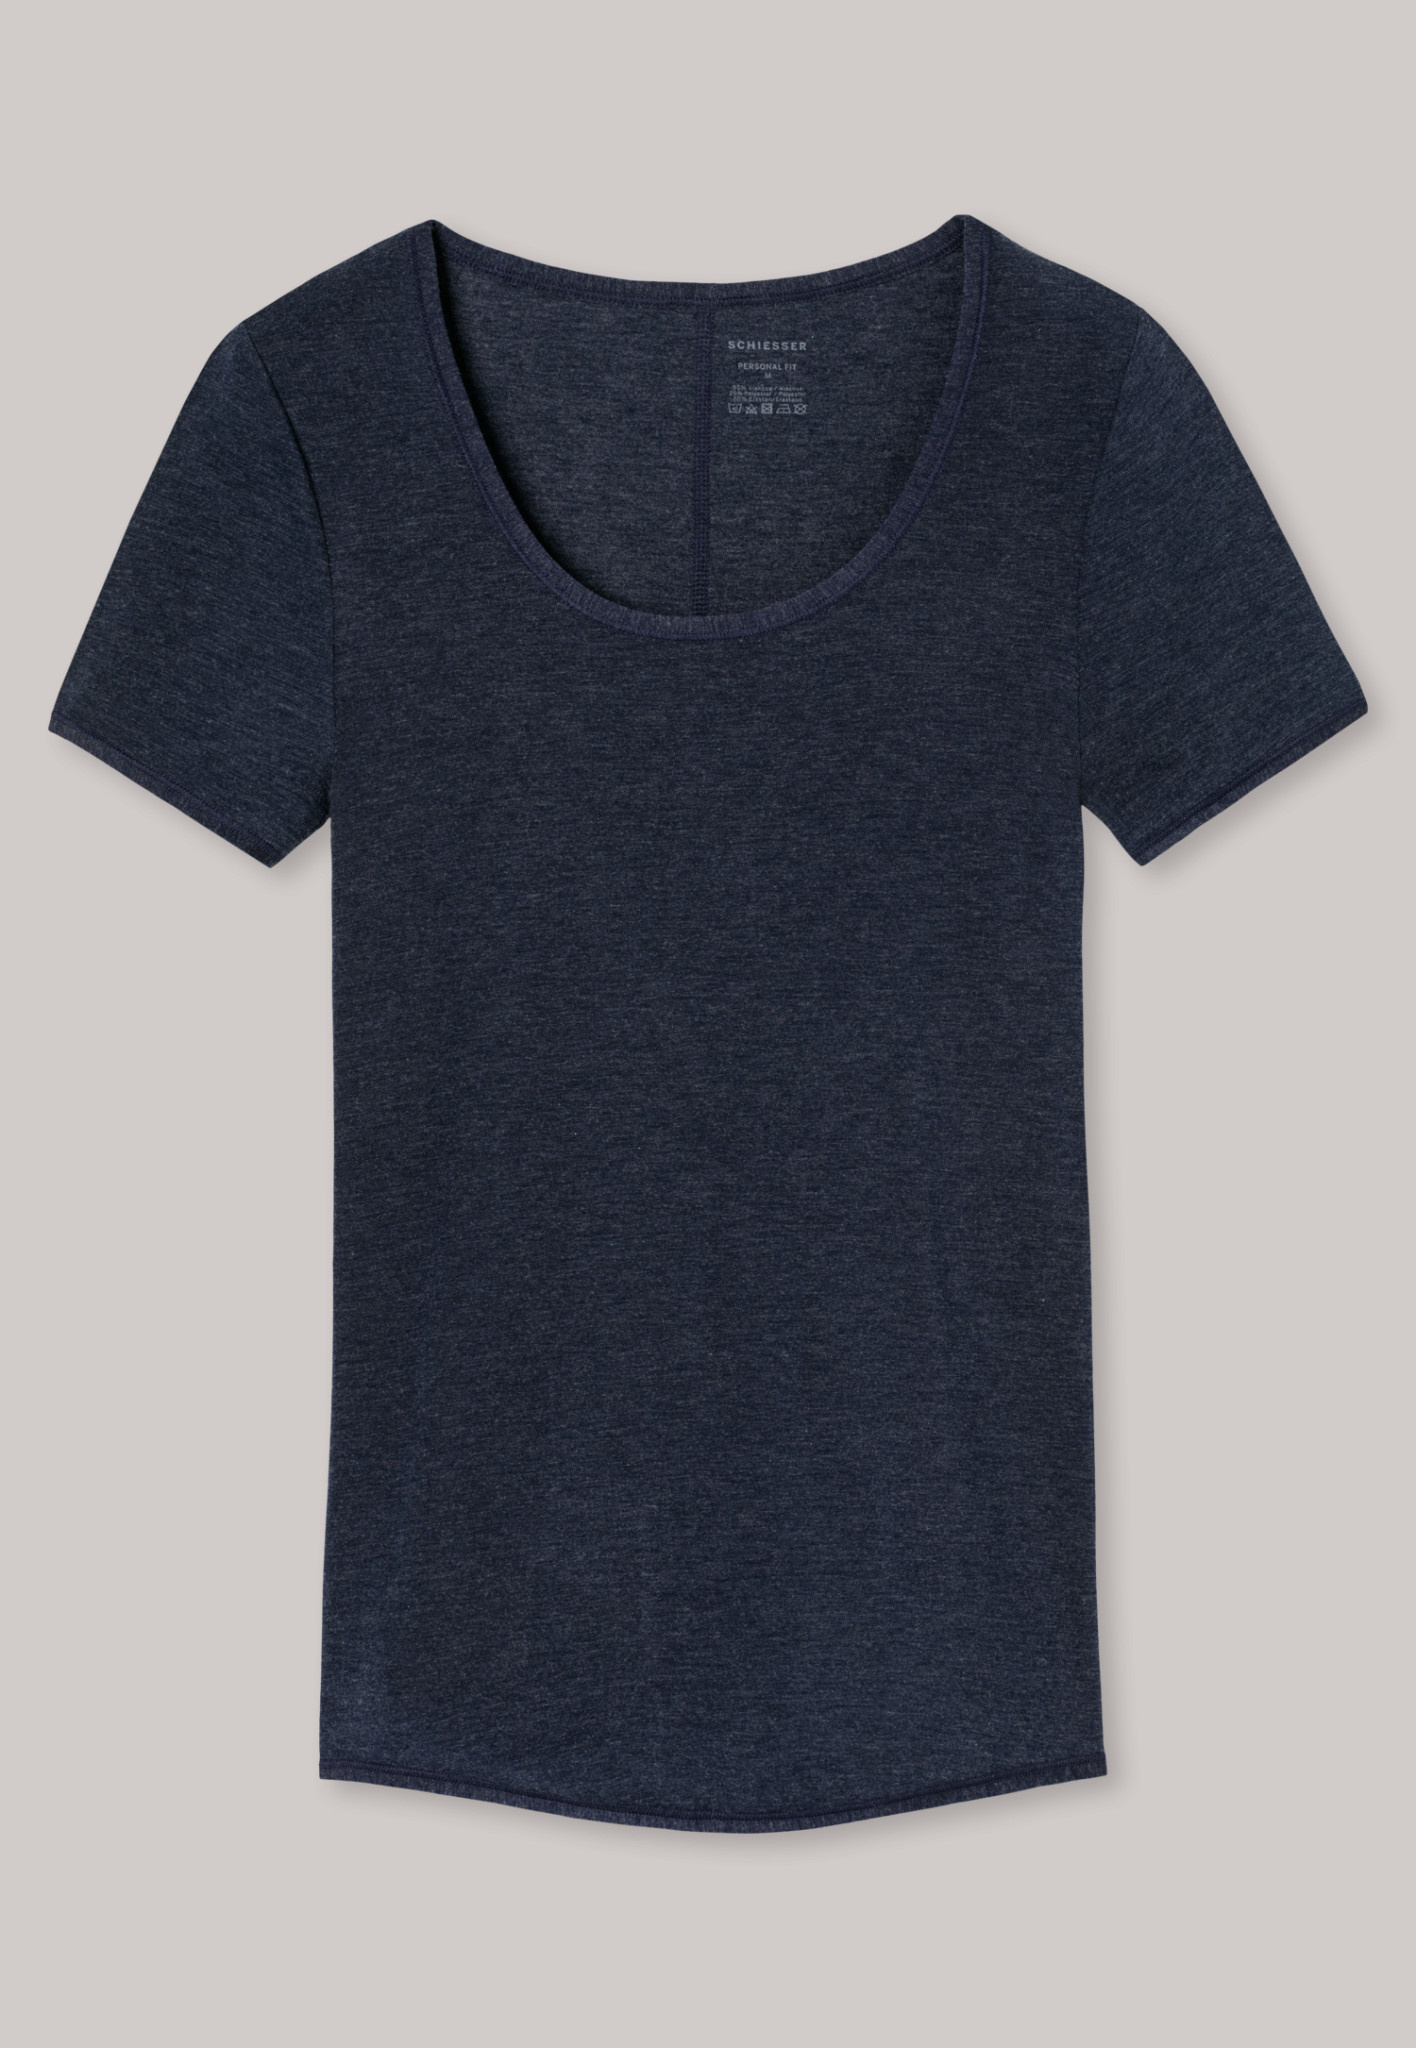 T-shirt Personal Fit 155413 - nachtblauw-3